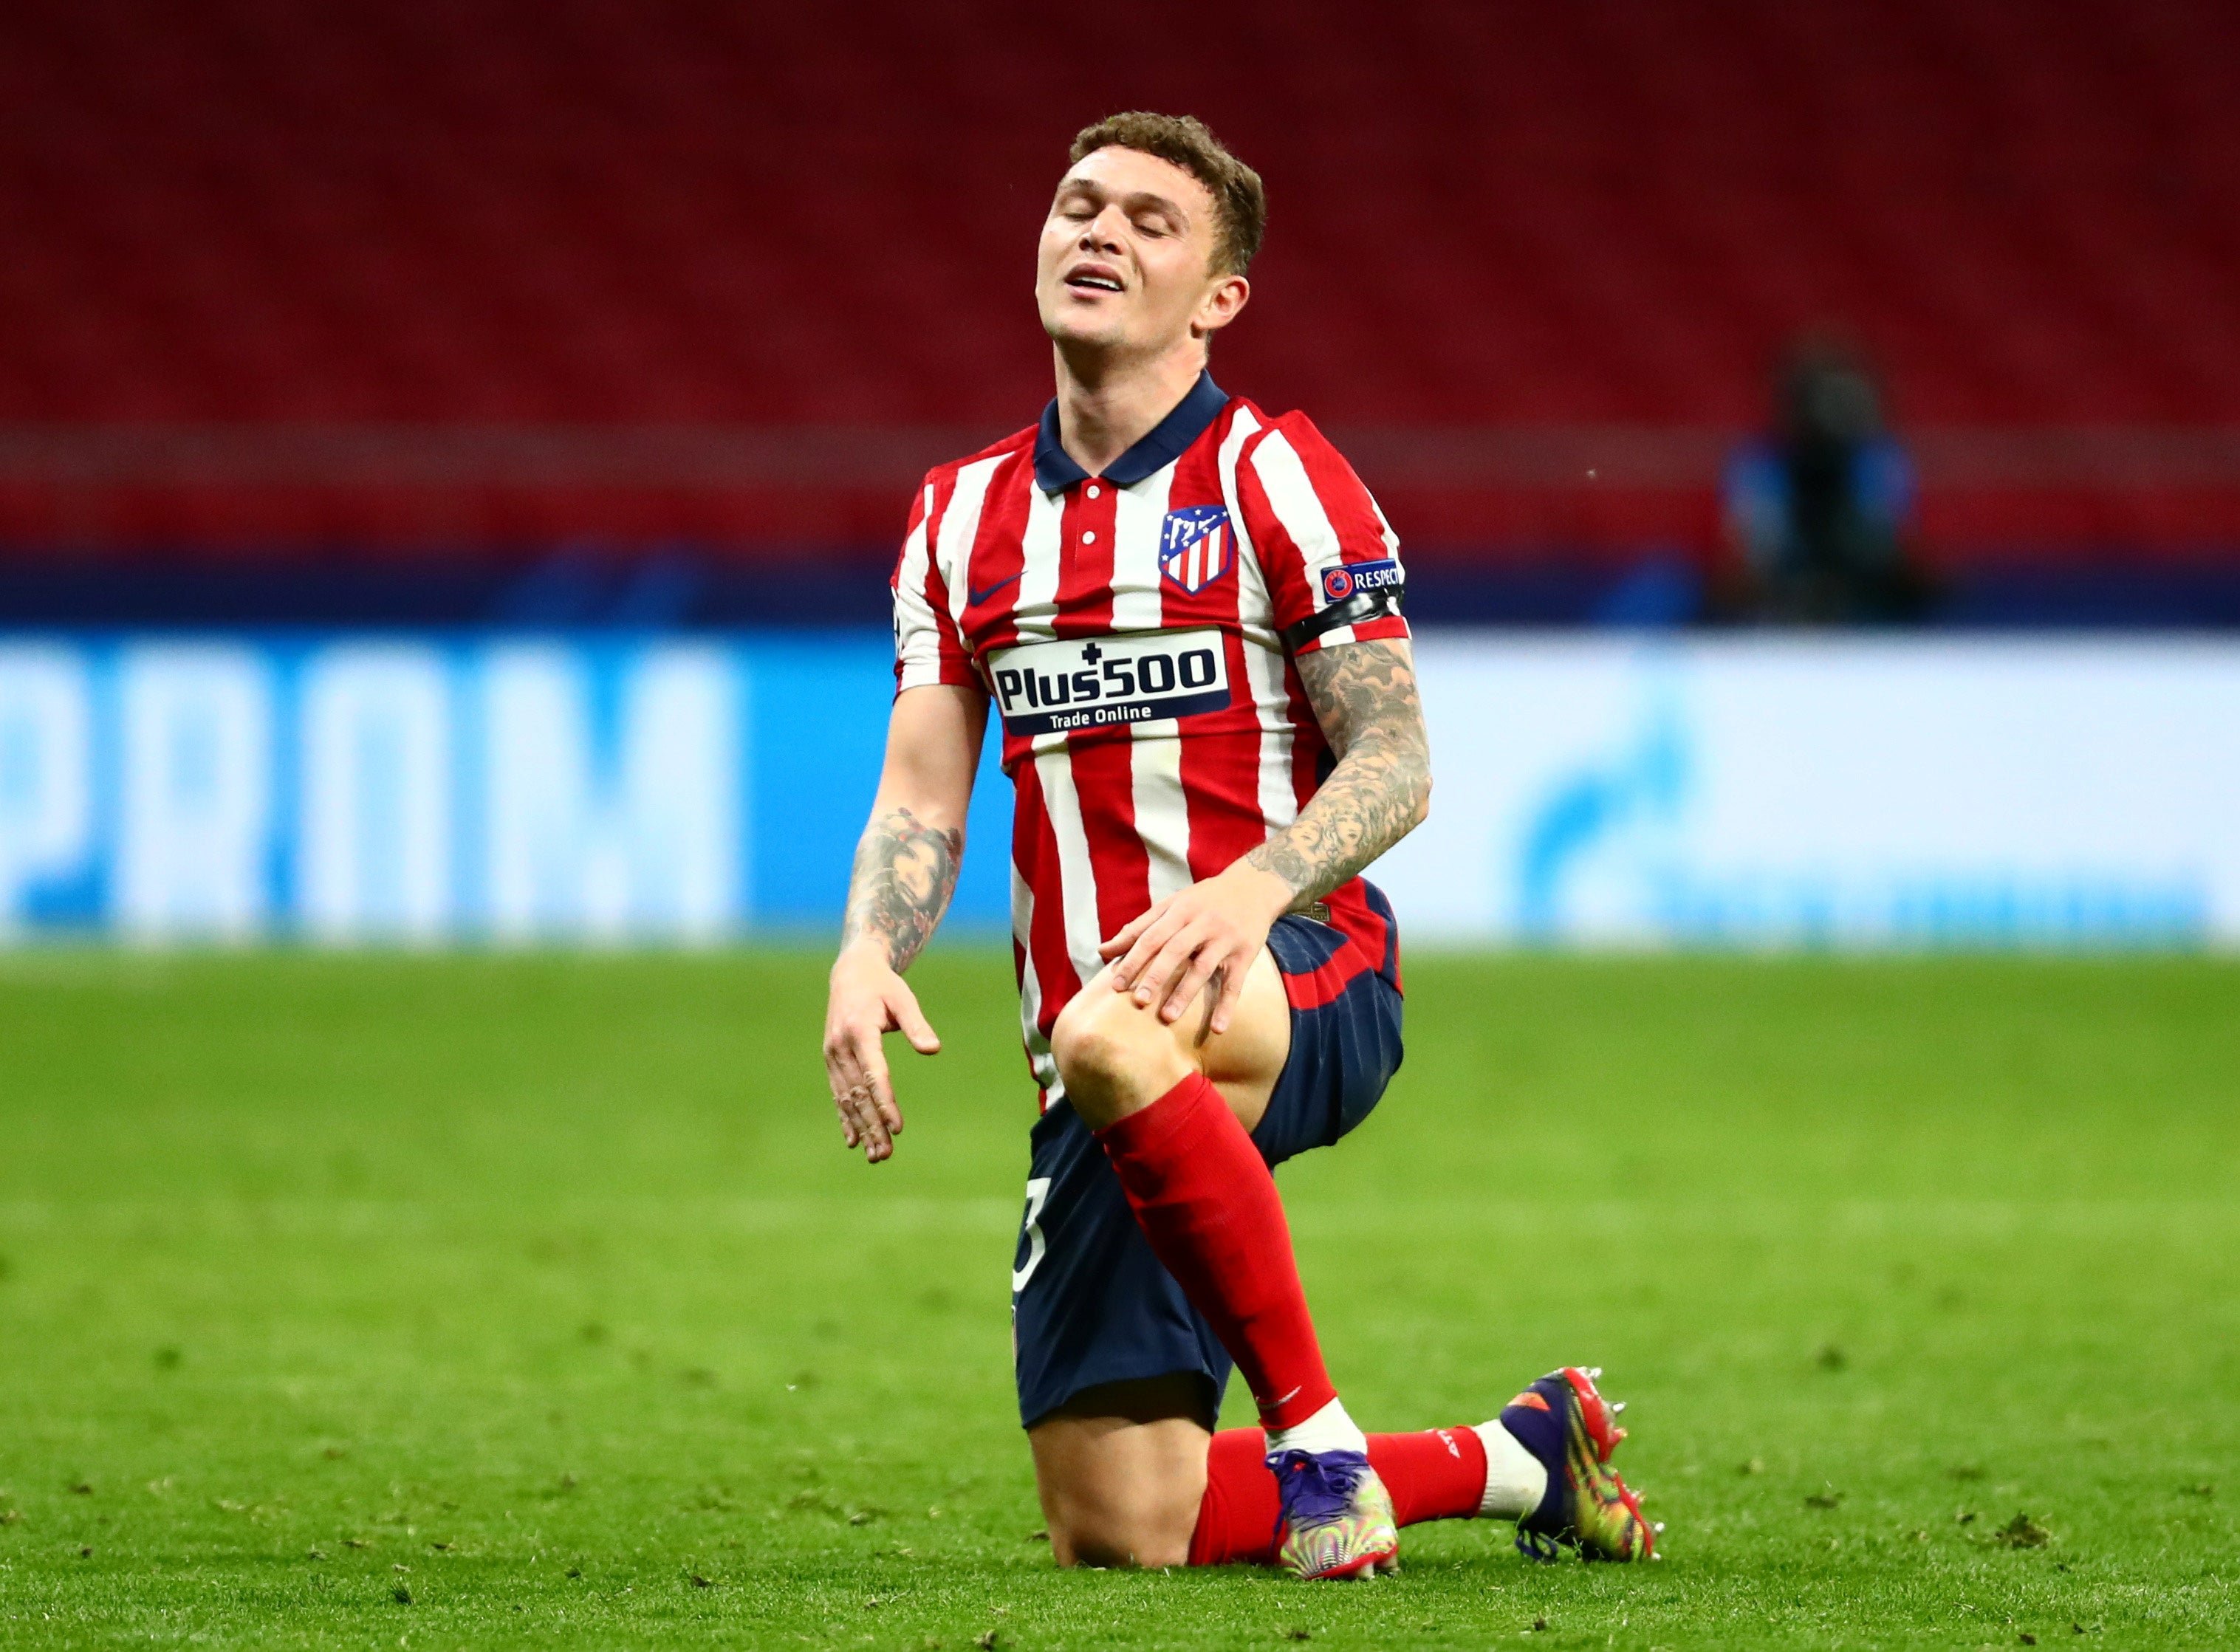 Trippier handed a lengthy ban for breaching betting rules